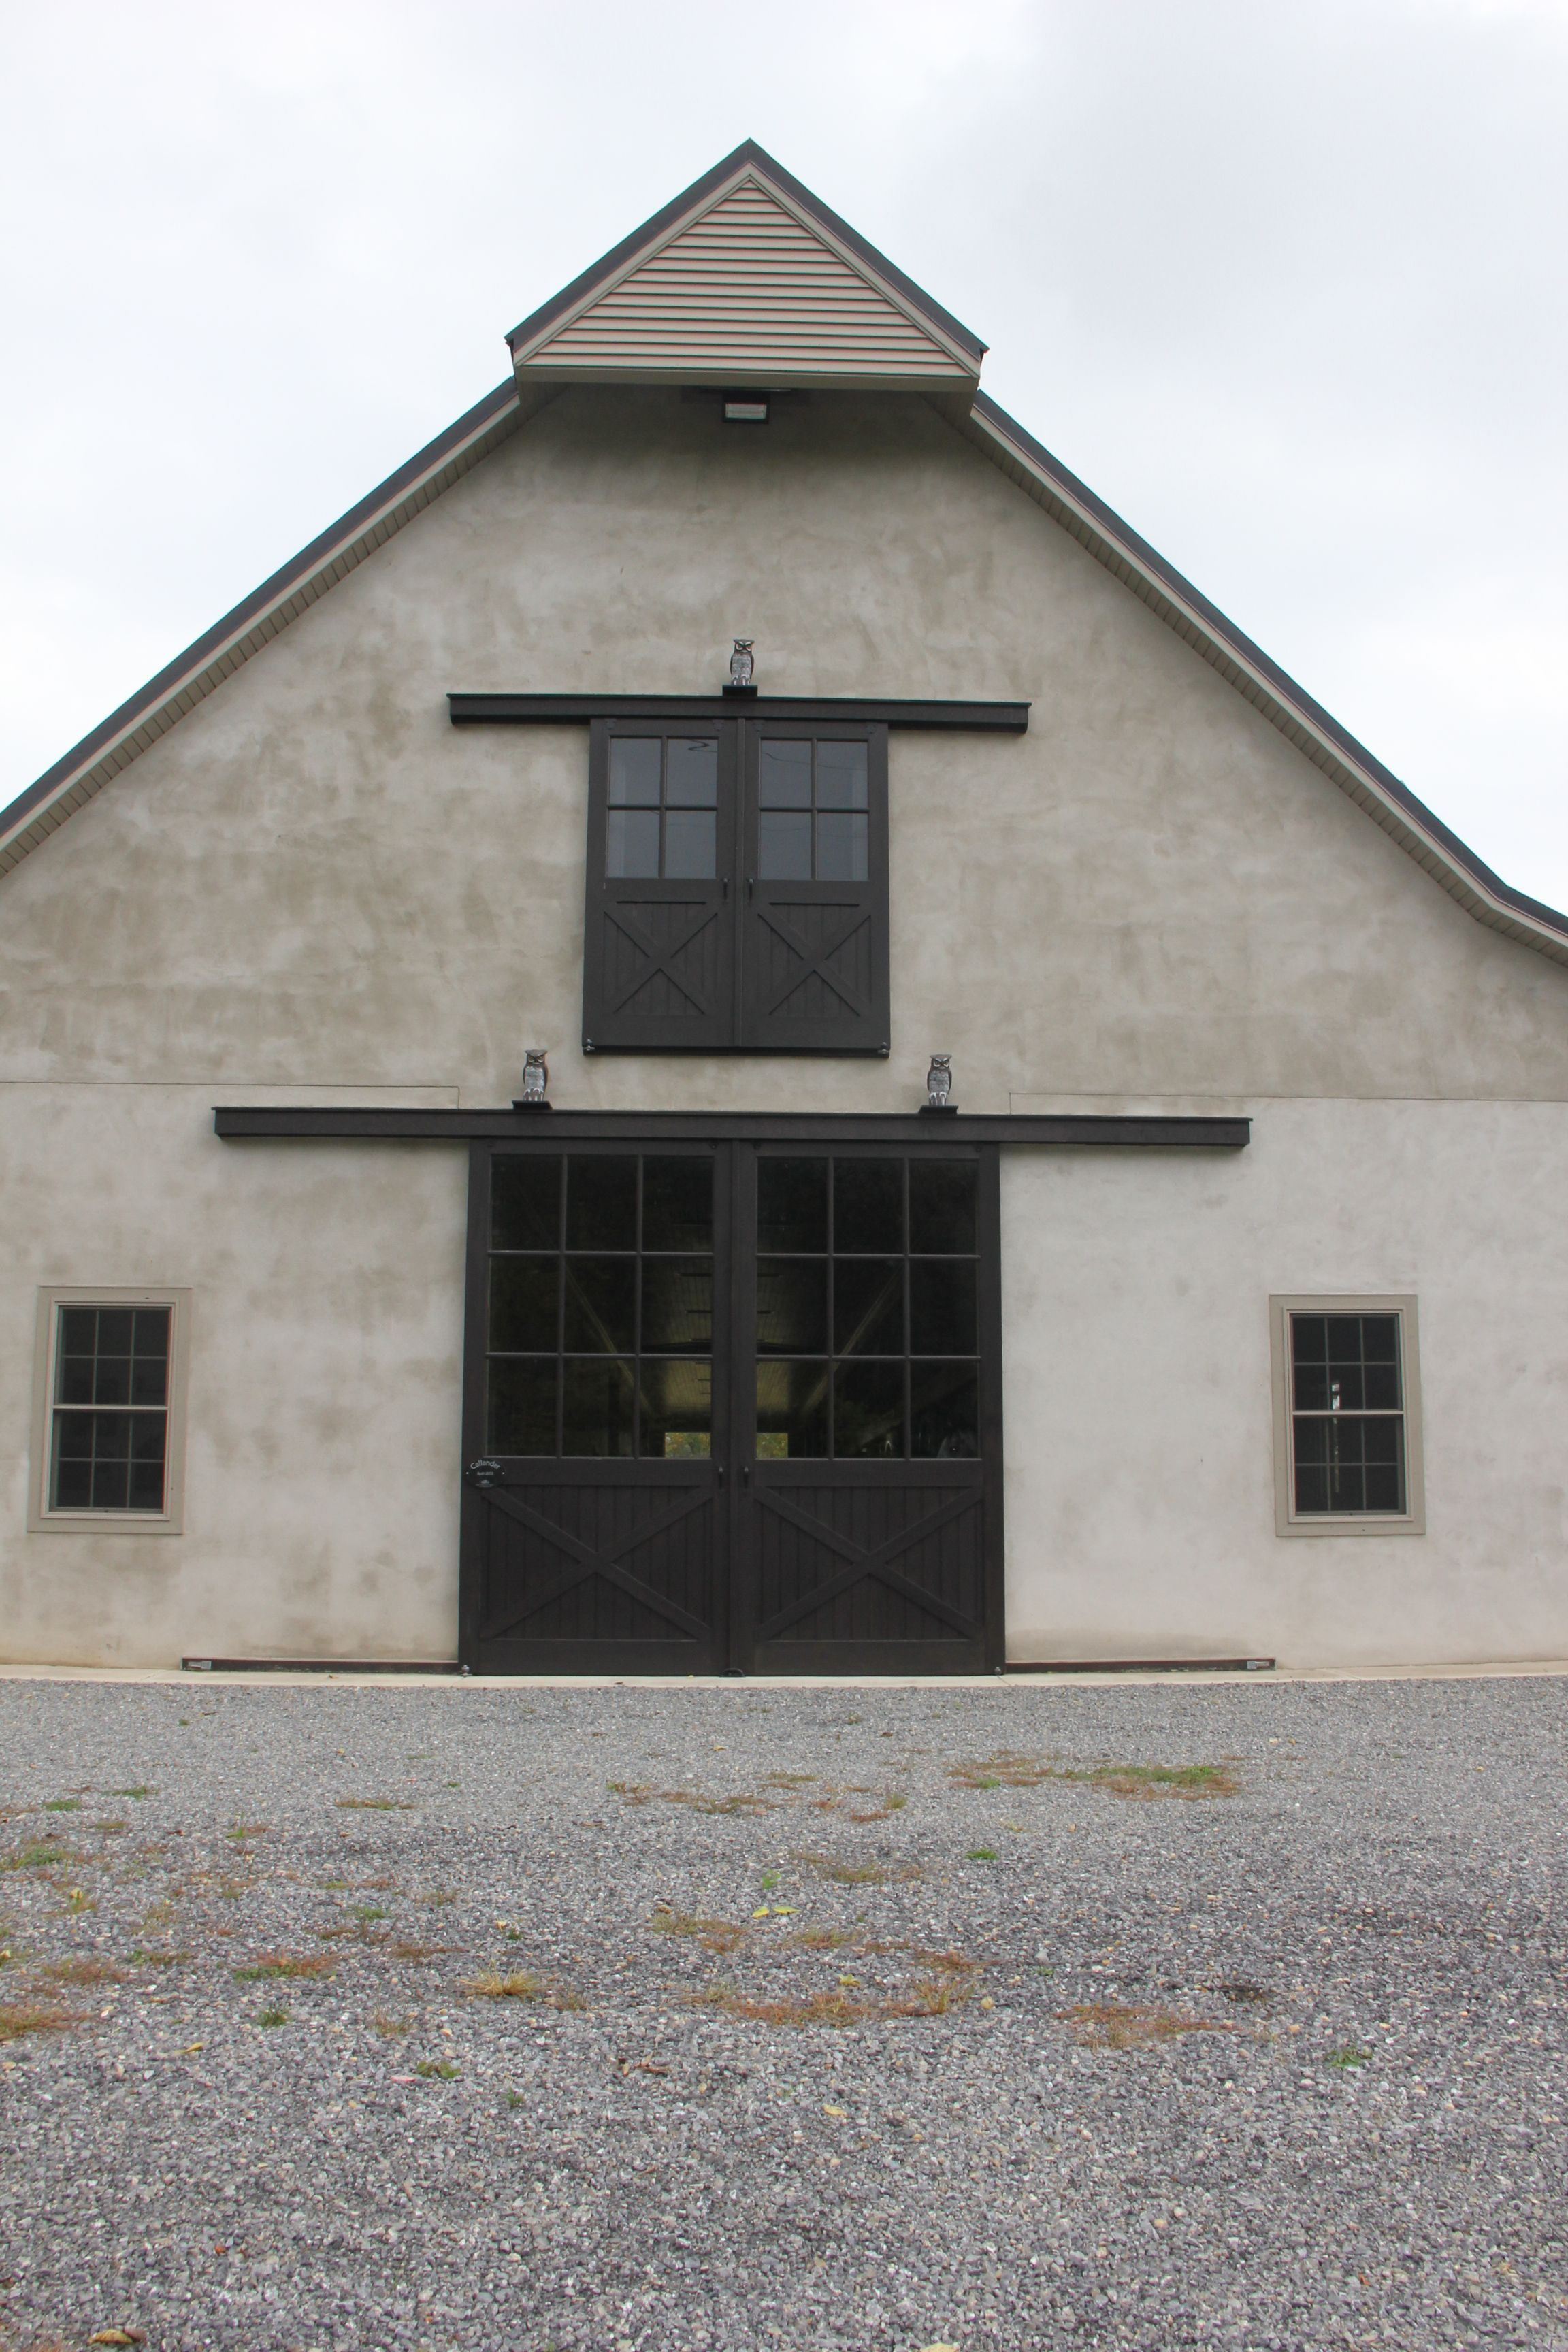 Horse Barn Doors With Windows Google Search Horse Barn Doors Barn Door Barn Door Window